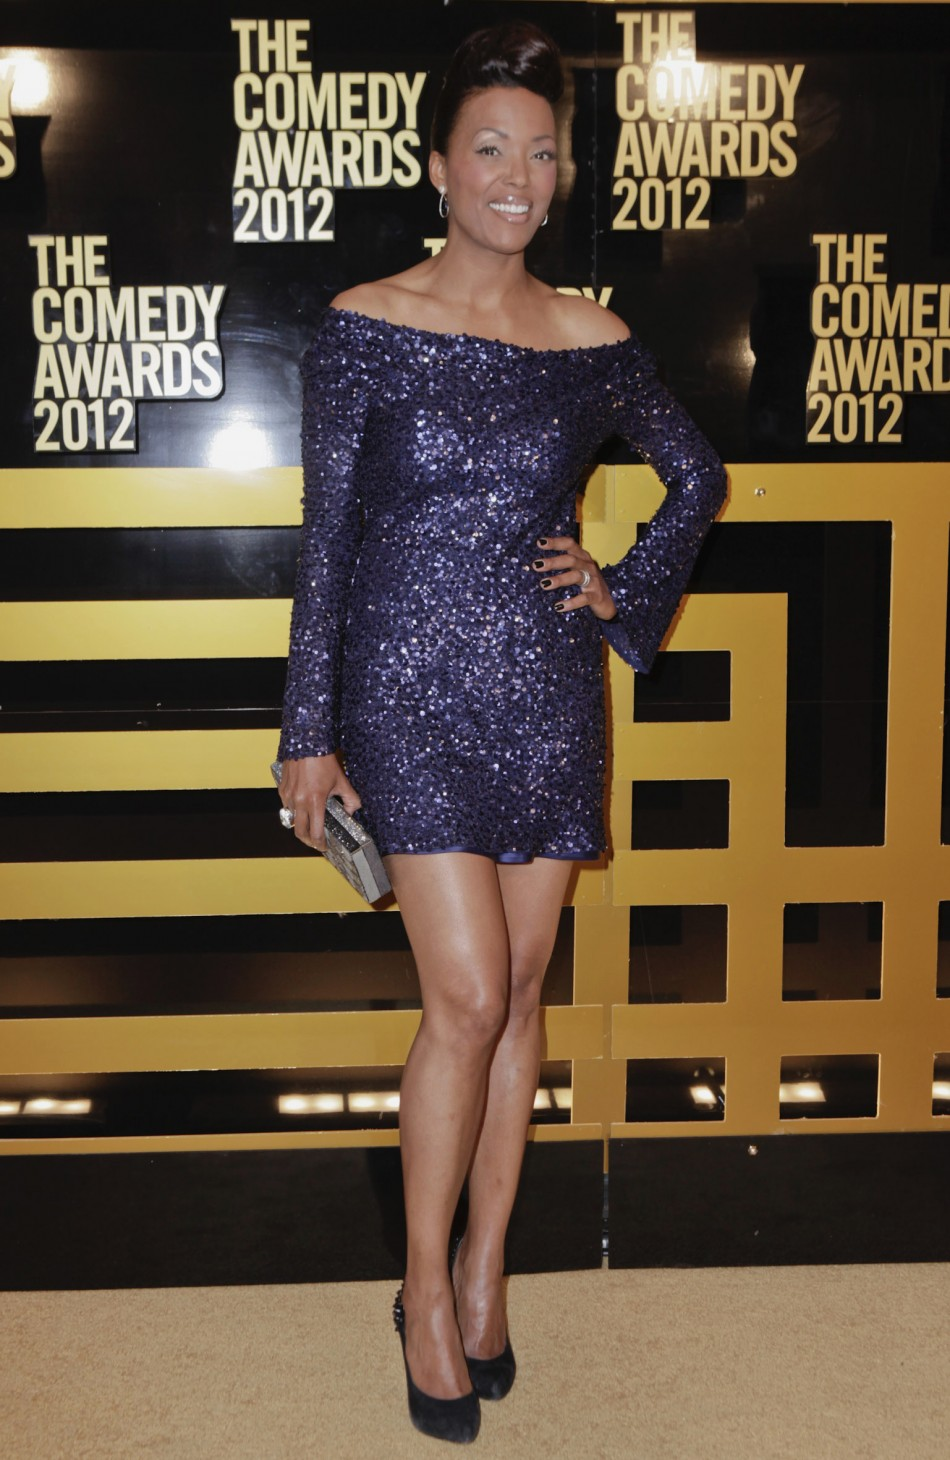 Actress Tyler arrives for the Comedy Awards 2012 in New York City